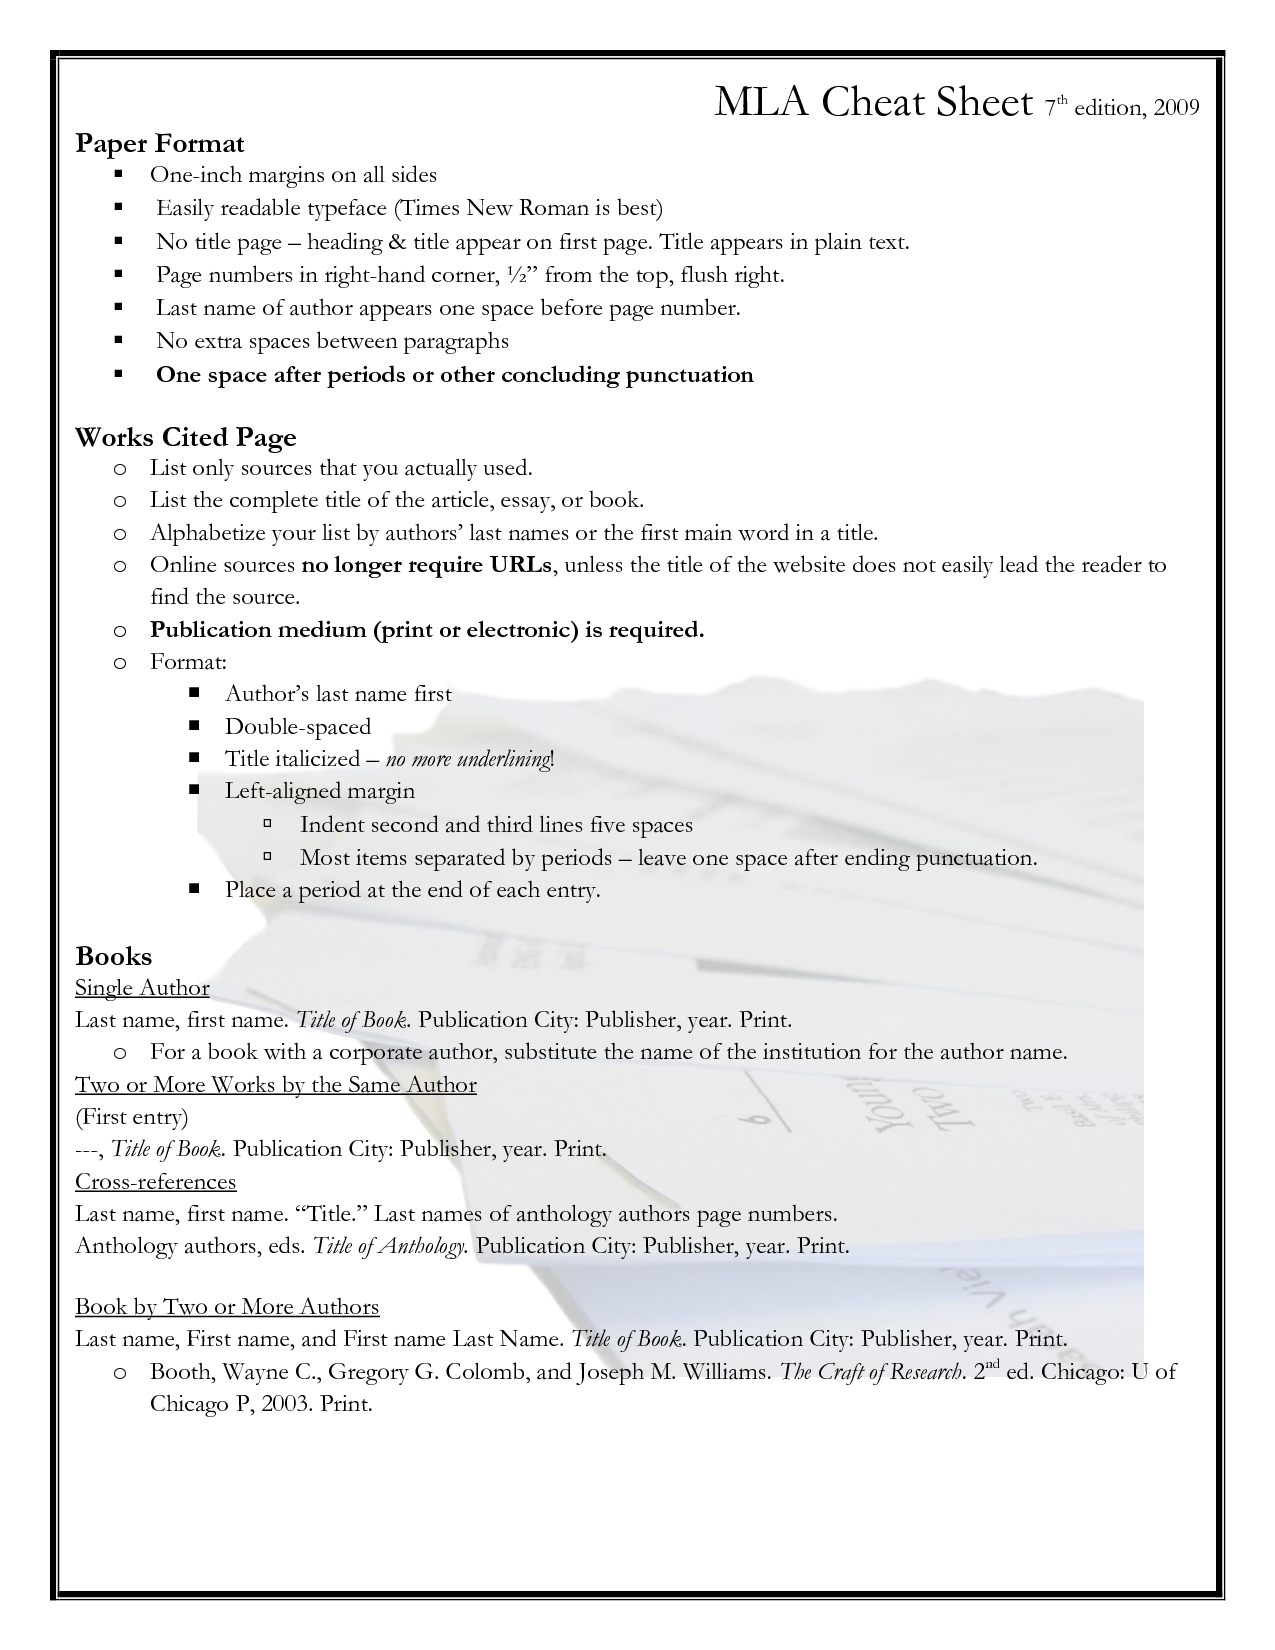 put in mla format for me Mla style made easy with the mla format template by reference point software with just a few clicks of the mouse, our 8th edtion mla format template will set up a new word document with the proper margins, default document sections and with the header and page numbers in exactly the right places for mla style.